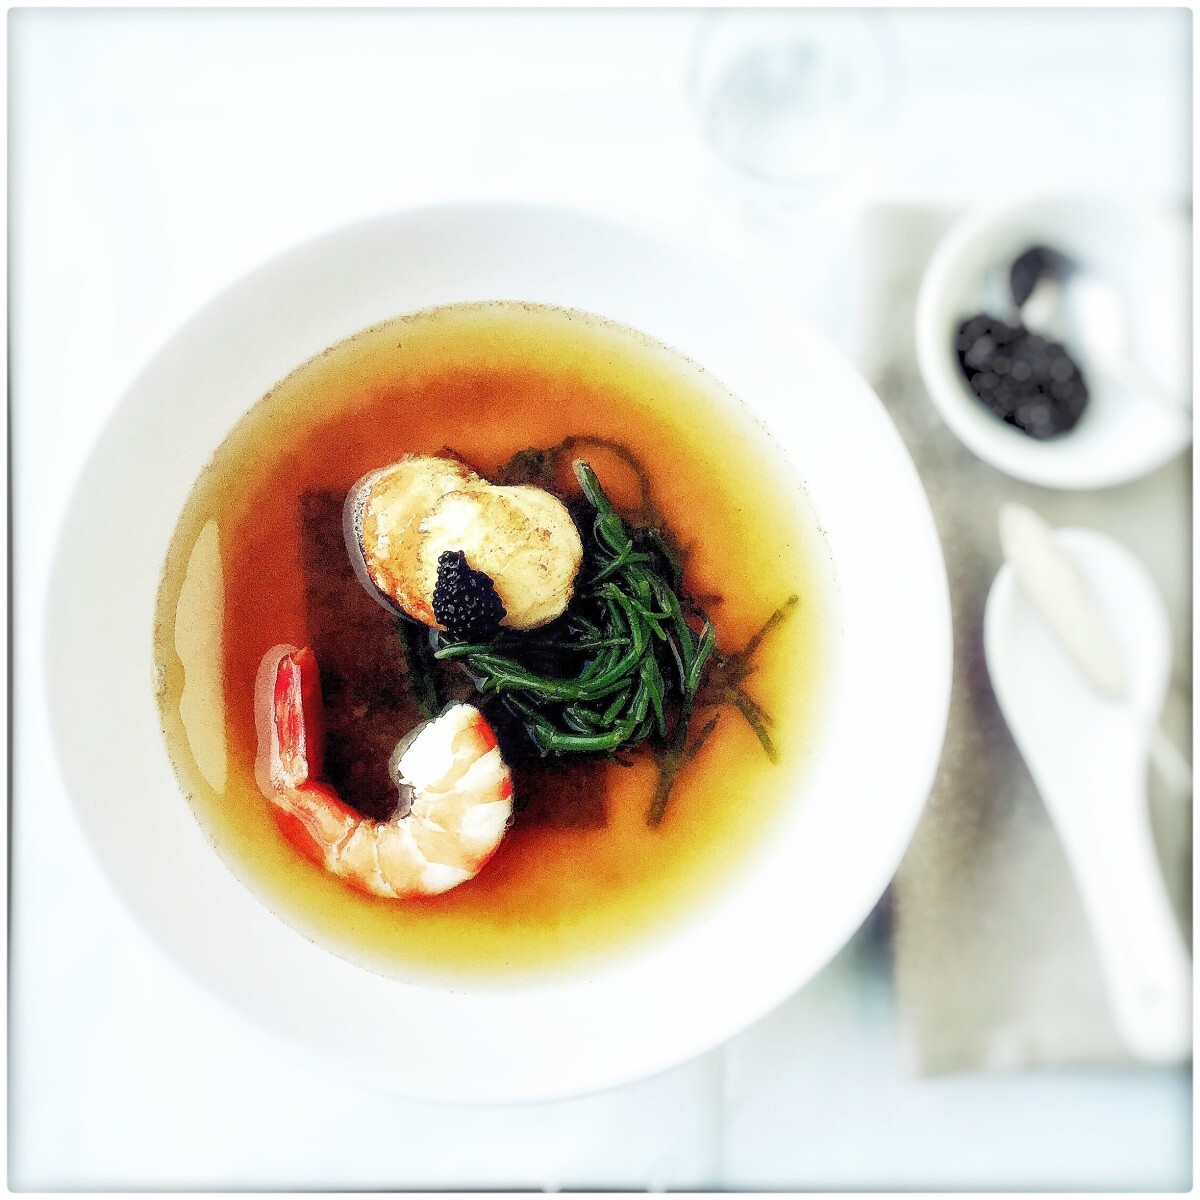 Miso soup with prawn, scallop and samphire